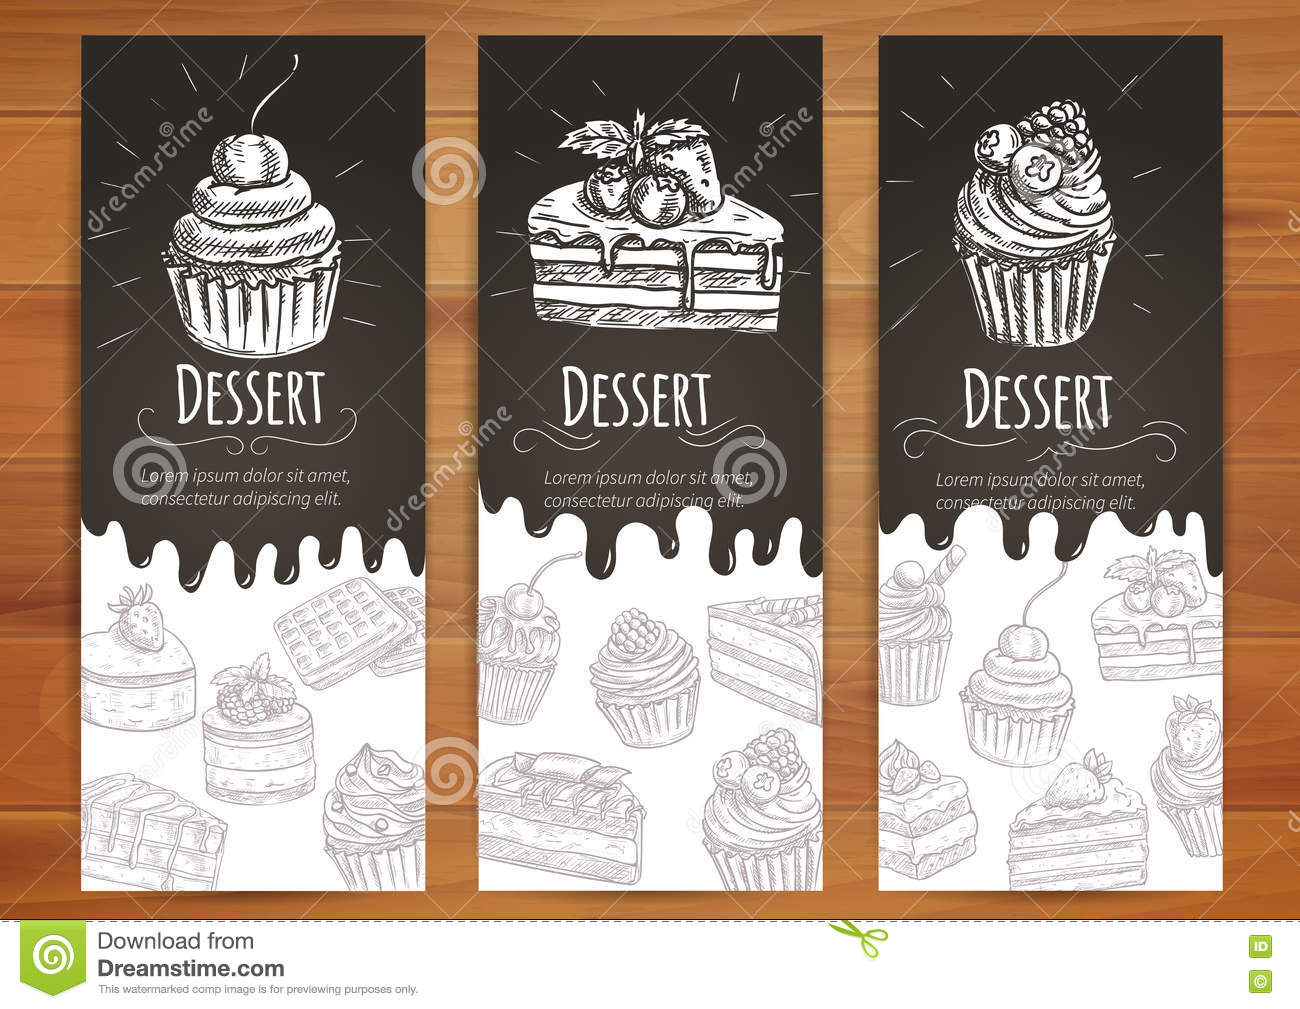 Bakery, confectionery, pastries, desserts poster